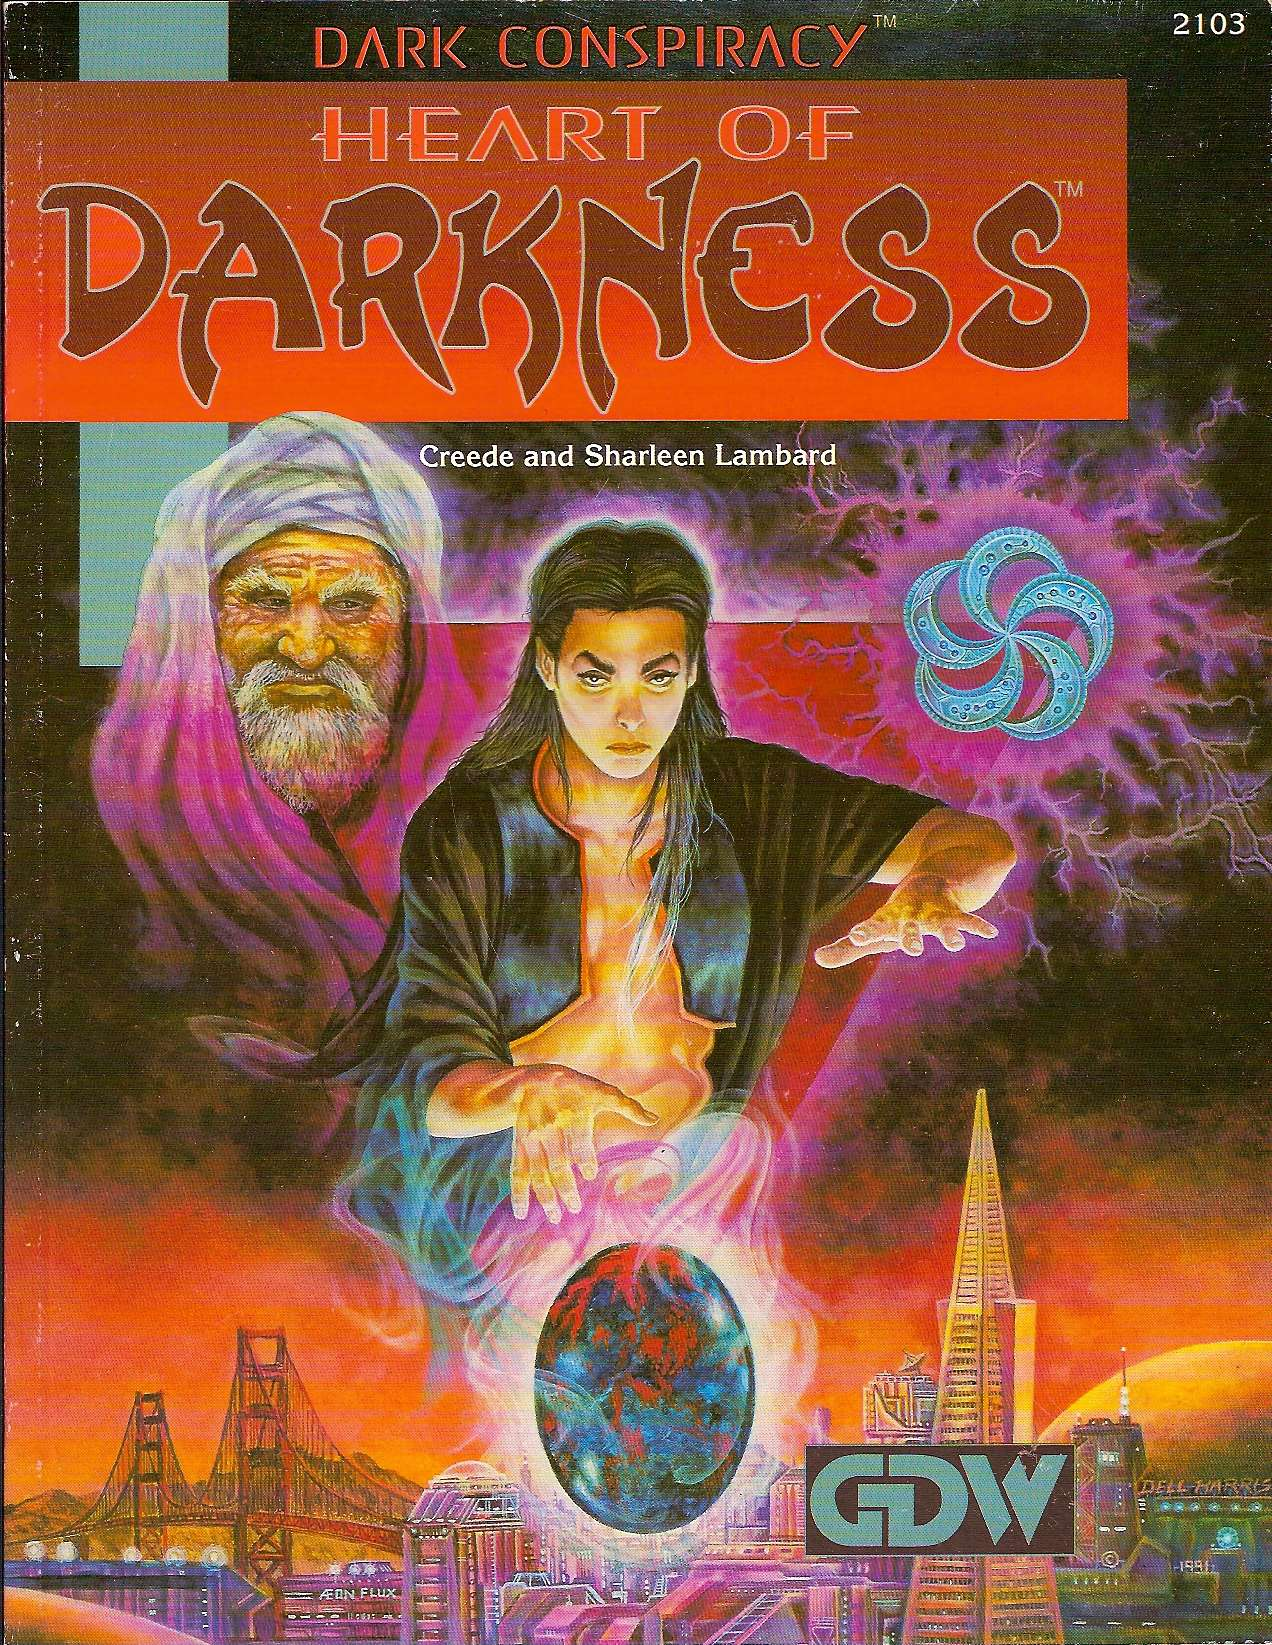 heart of darkness darkness essay Heart of darkness study guide contains a biography of joseph conrad, literature essays, a complete e-text, quiz questions, major themes, characters, and a full summary and analysis.